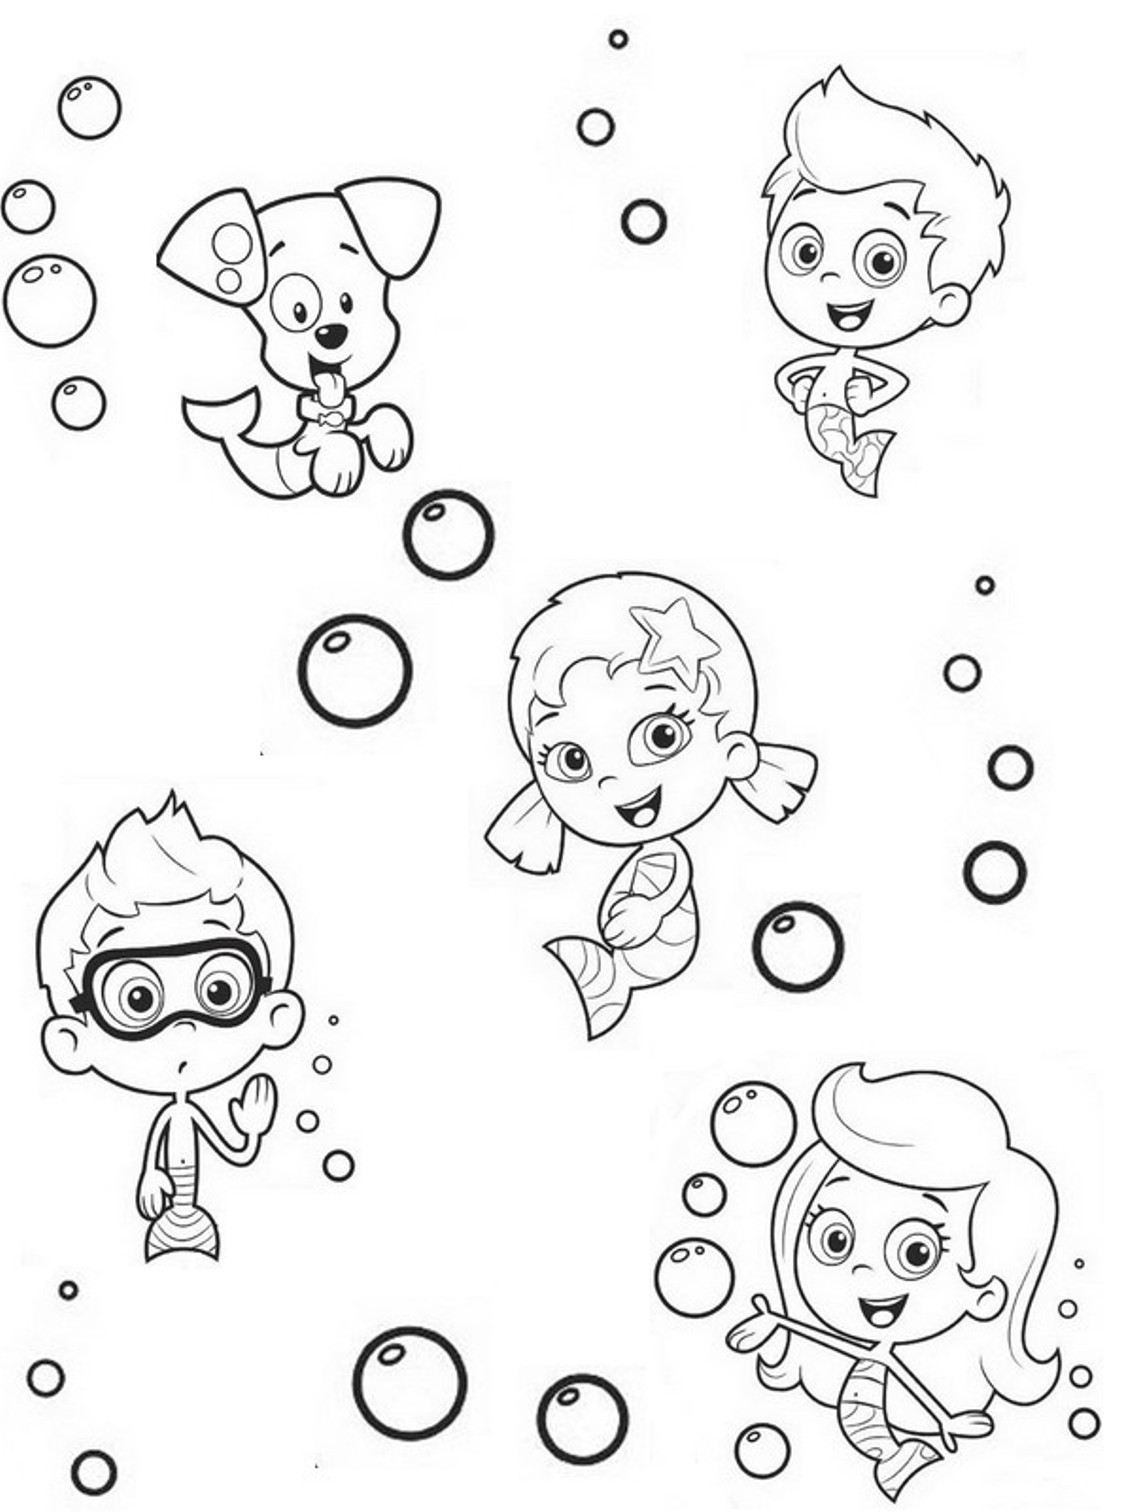 1134x1512 Bubble Guppies Coloring Pages Inspiring Guppy Best Design